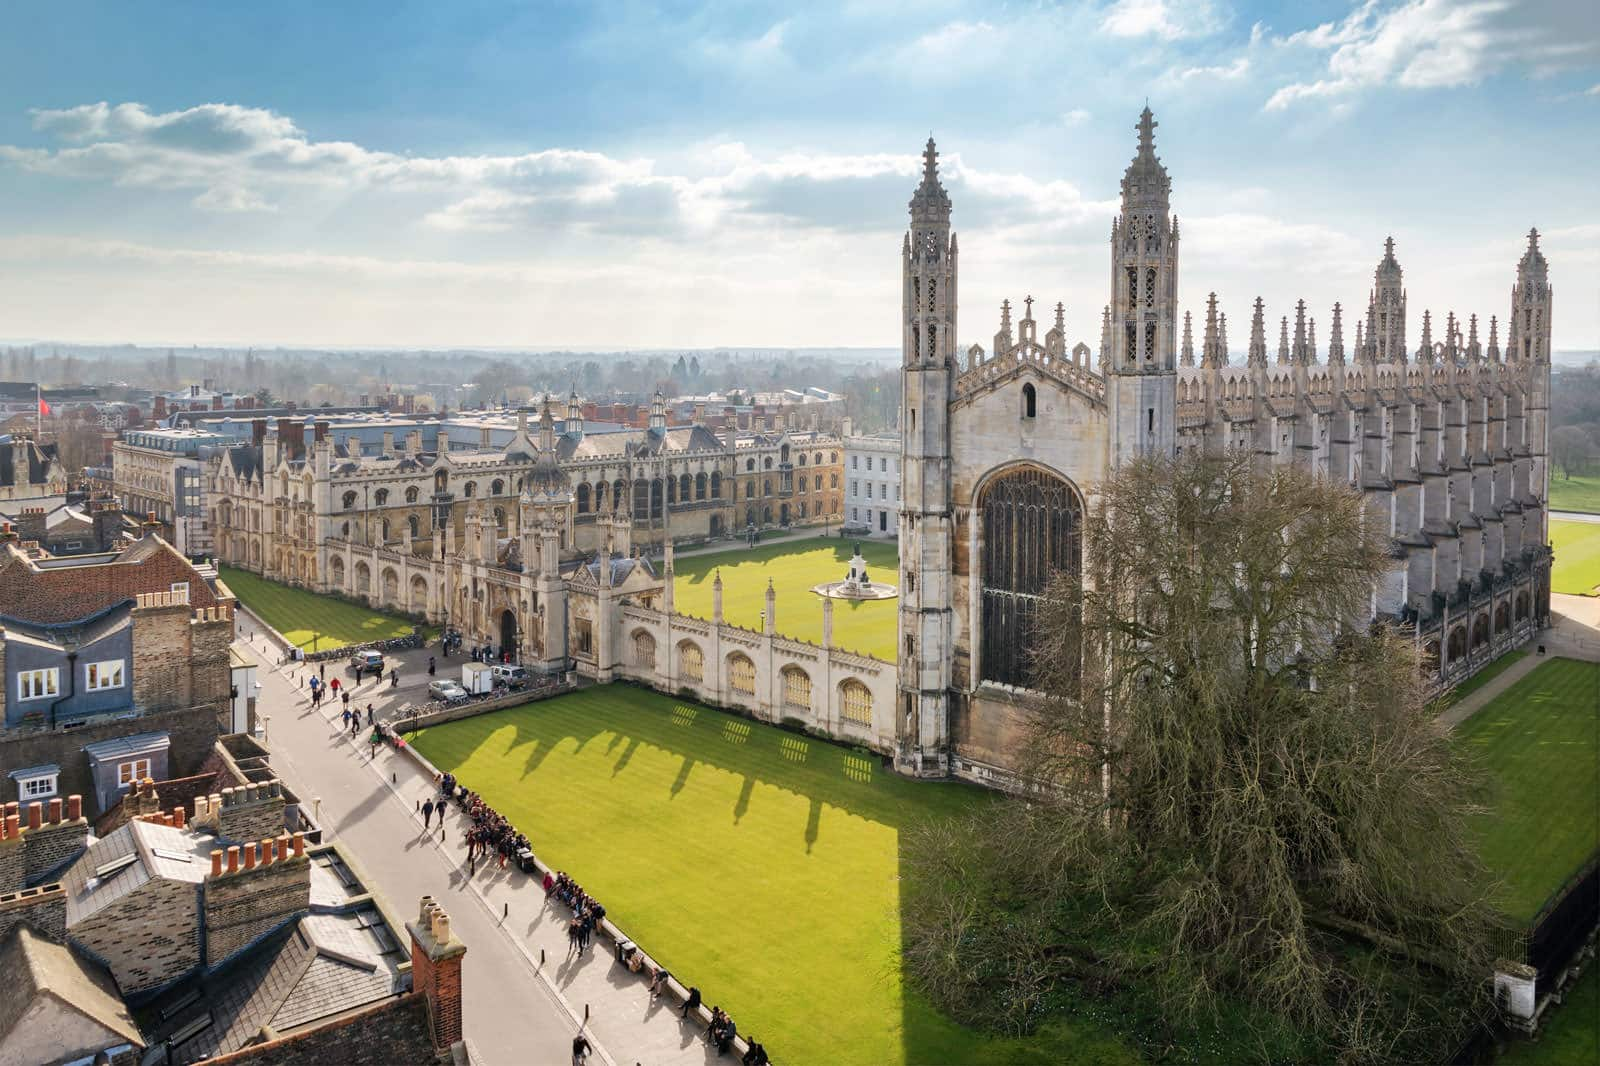 overview of Cambridge University